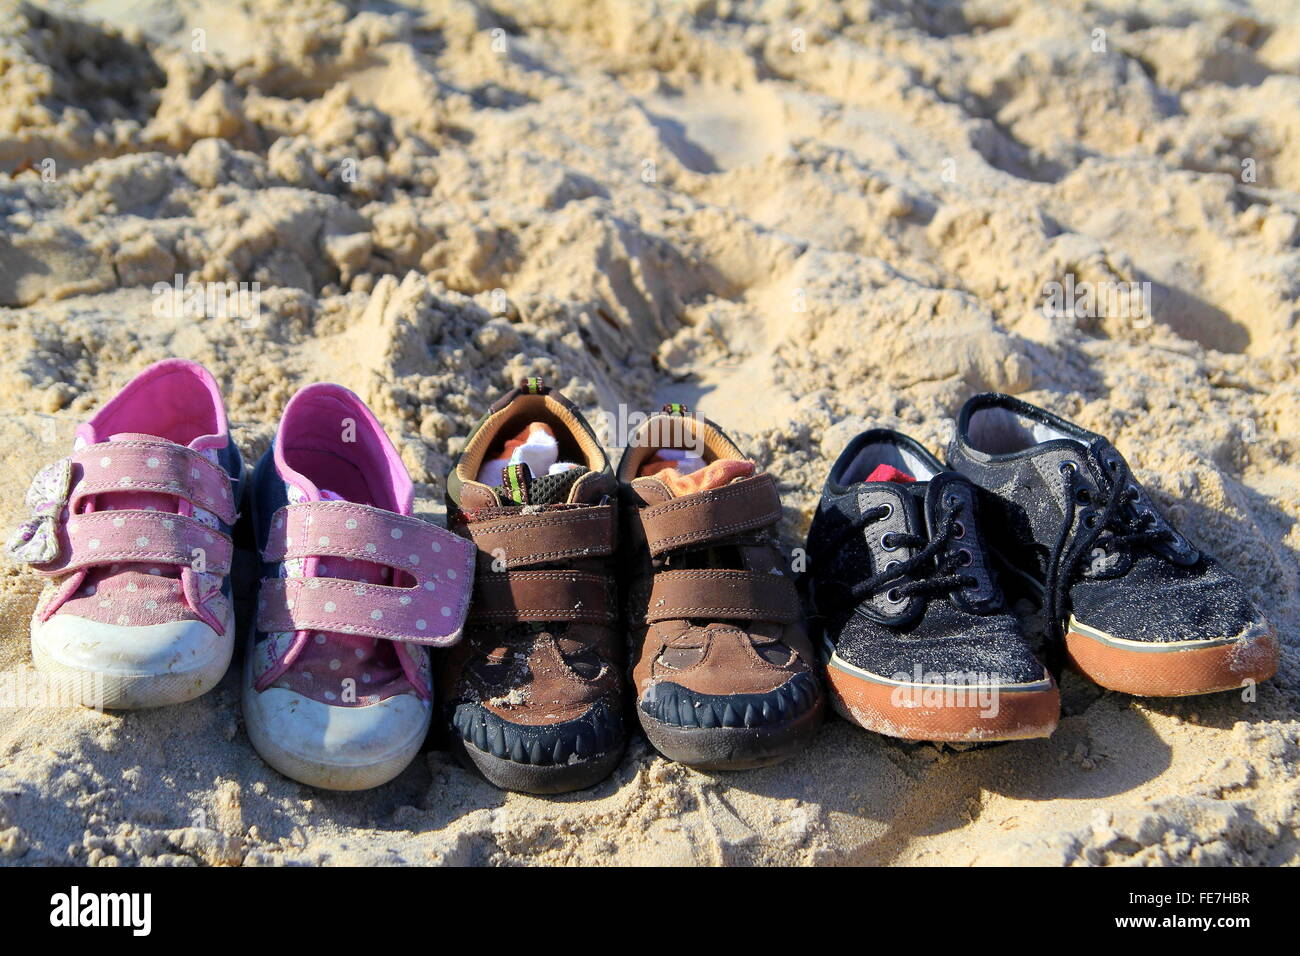 484109530cf8e Three pairs of childrens shoes and socks neatly left on a sunny beach